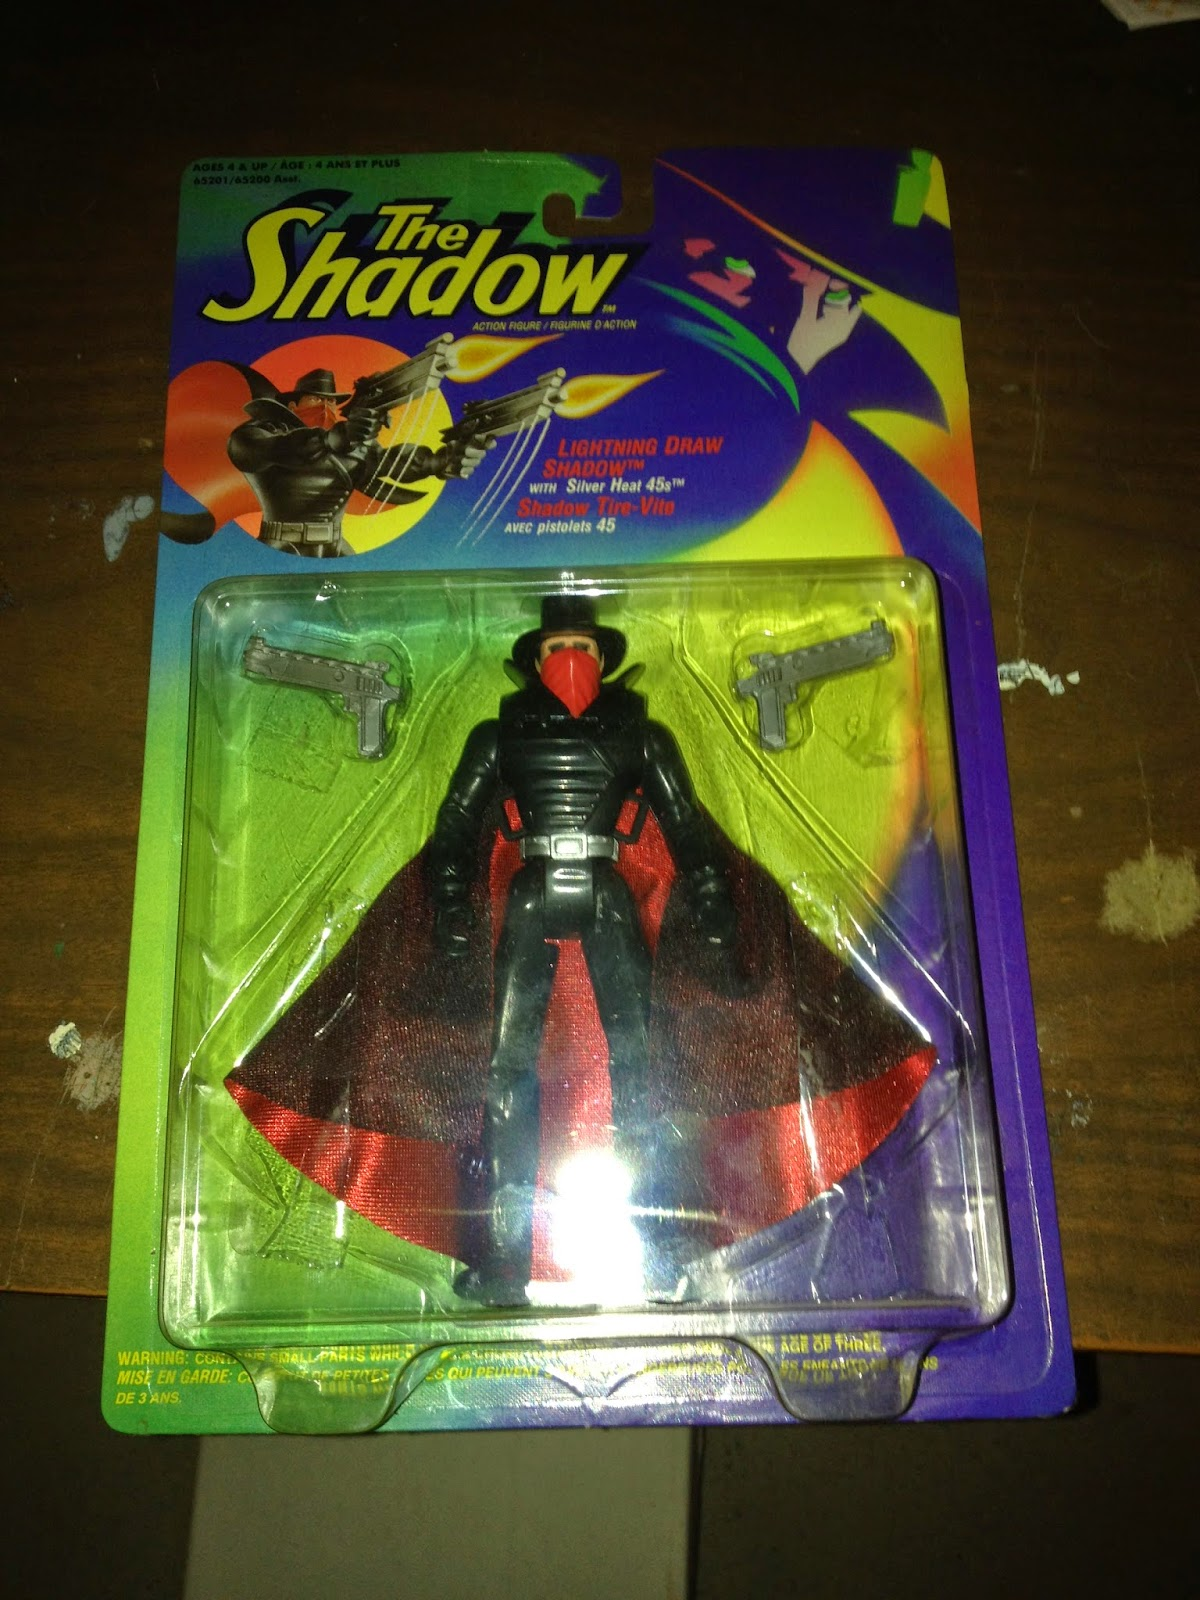 My mint-in-package Shadow action figure.